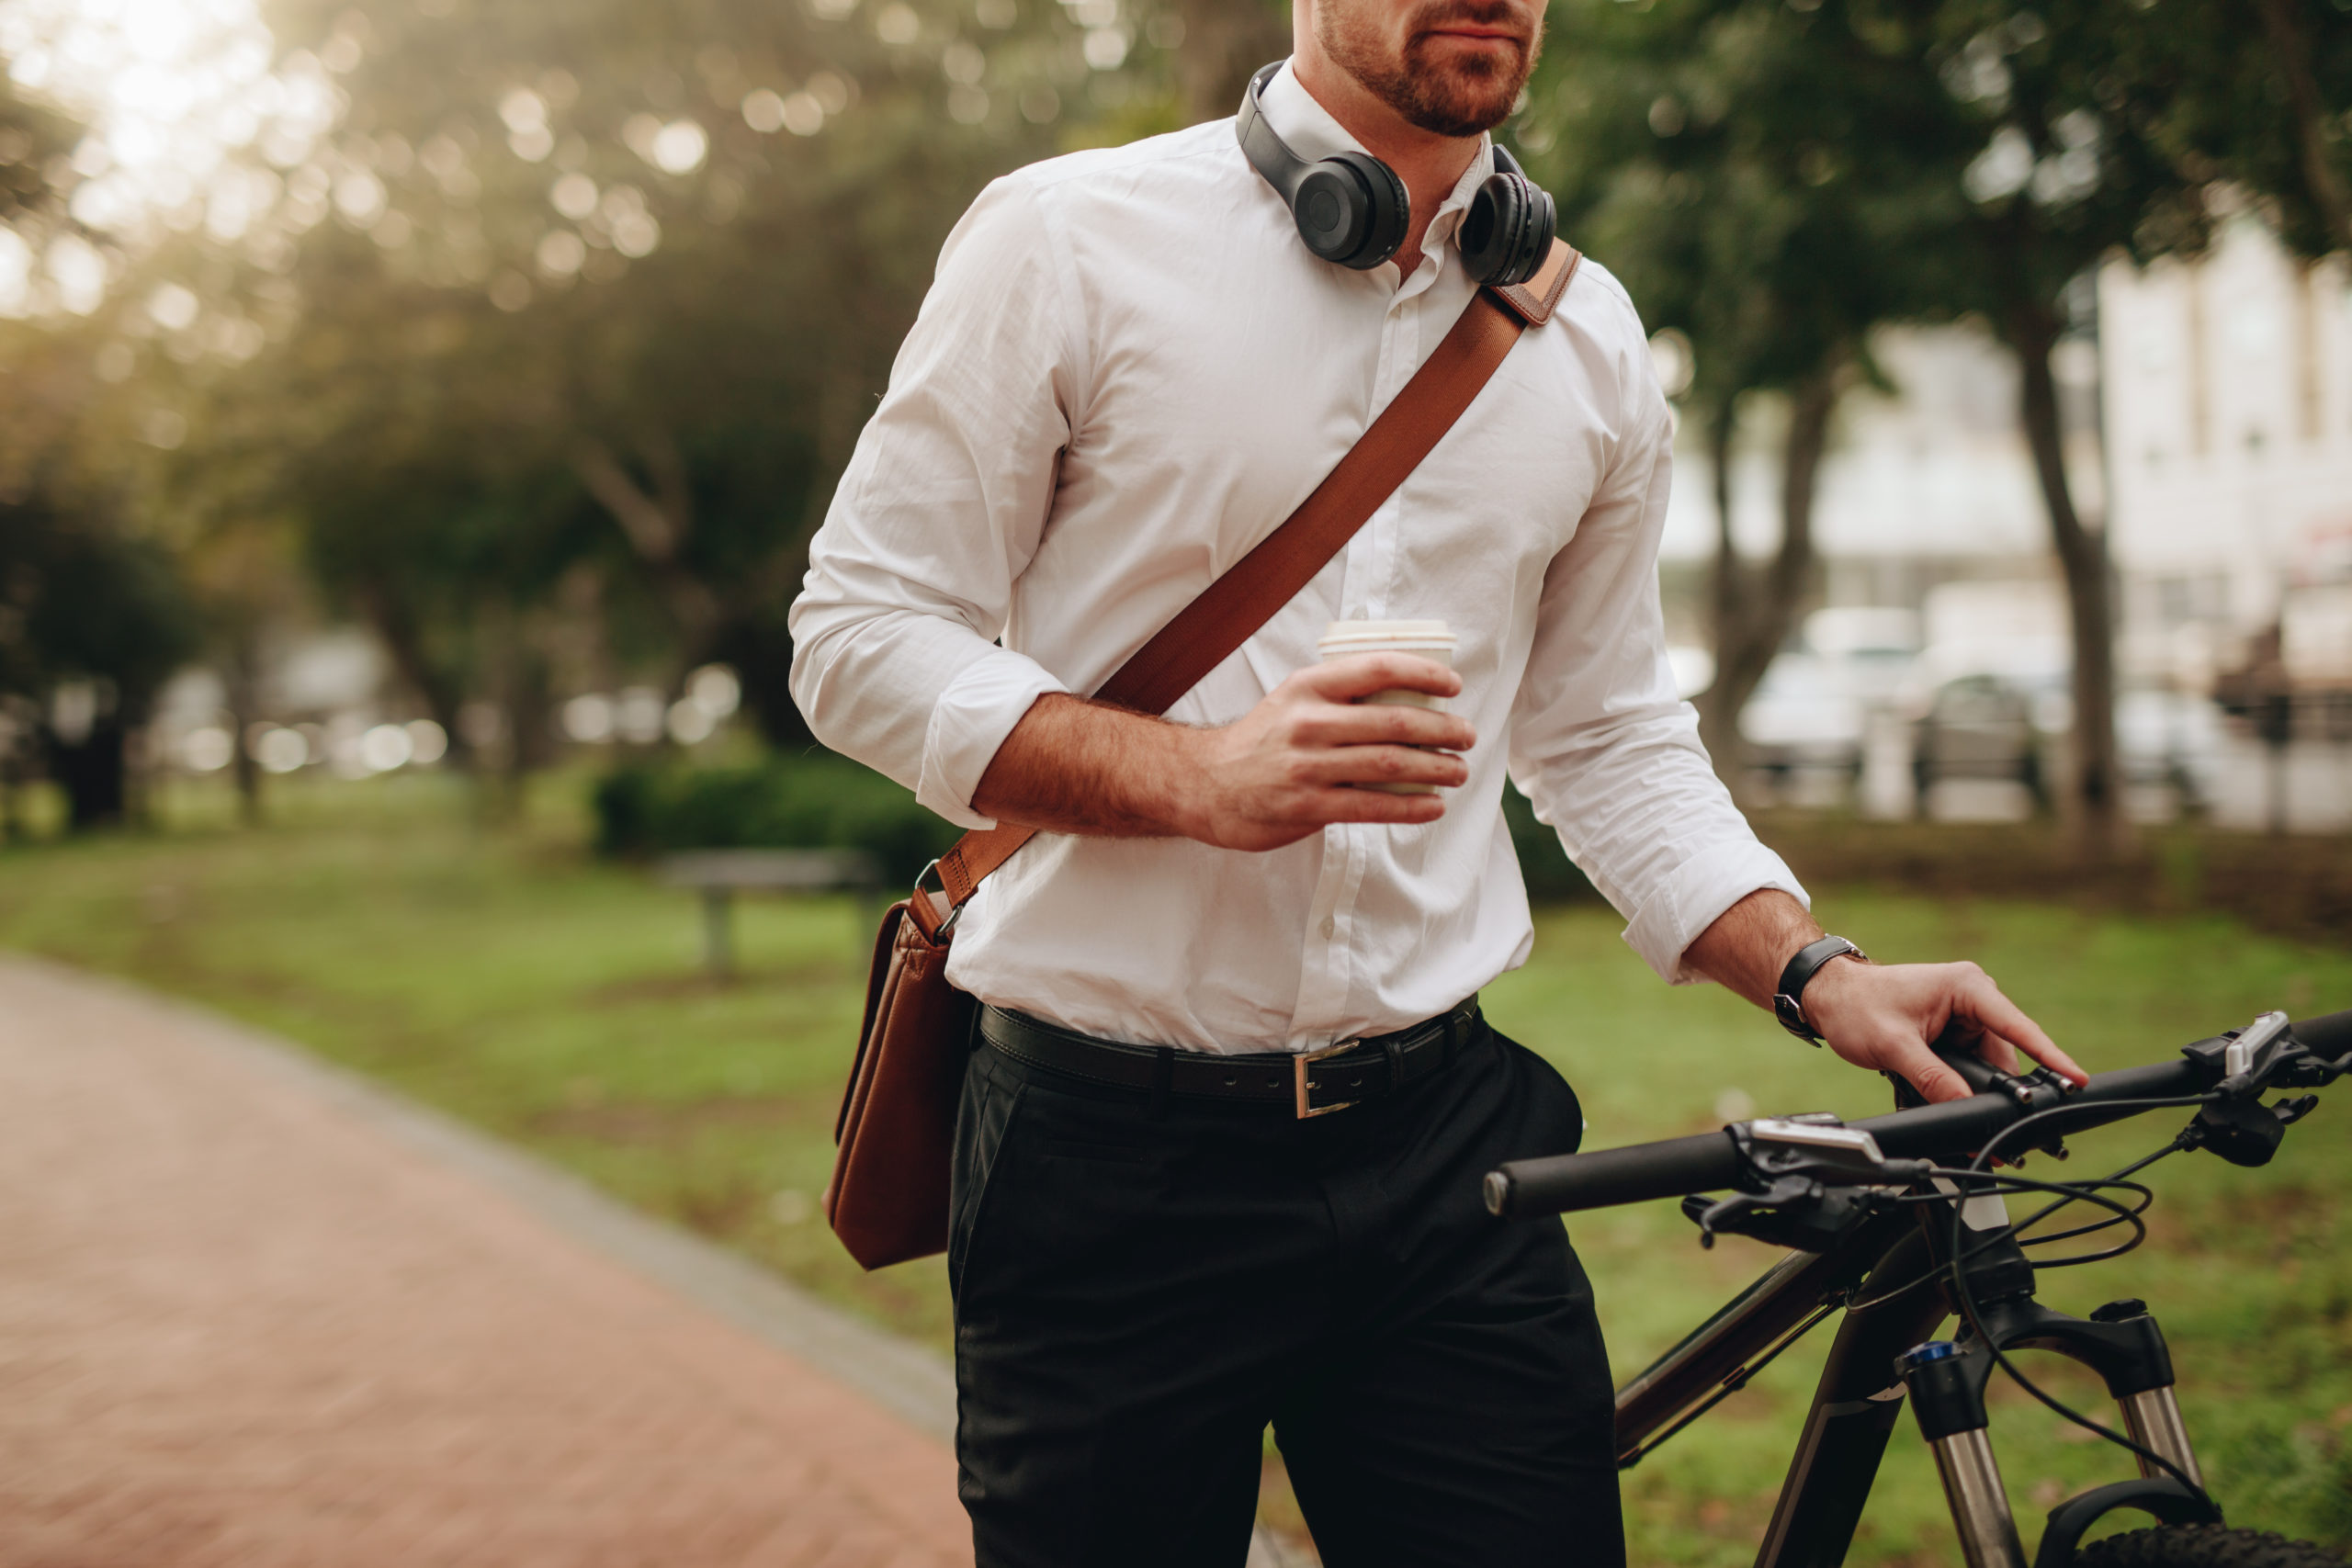 Man Cycling To Work With Coffee